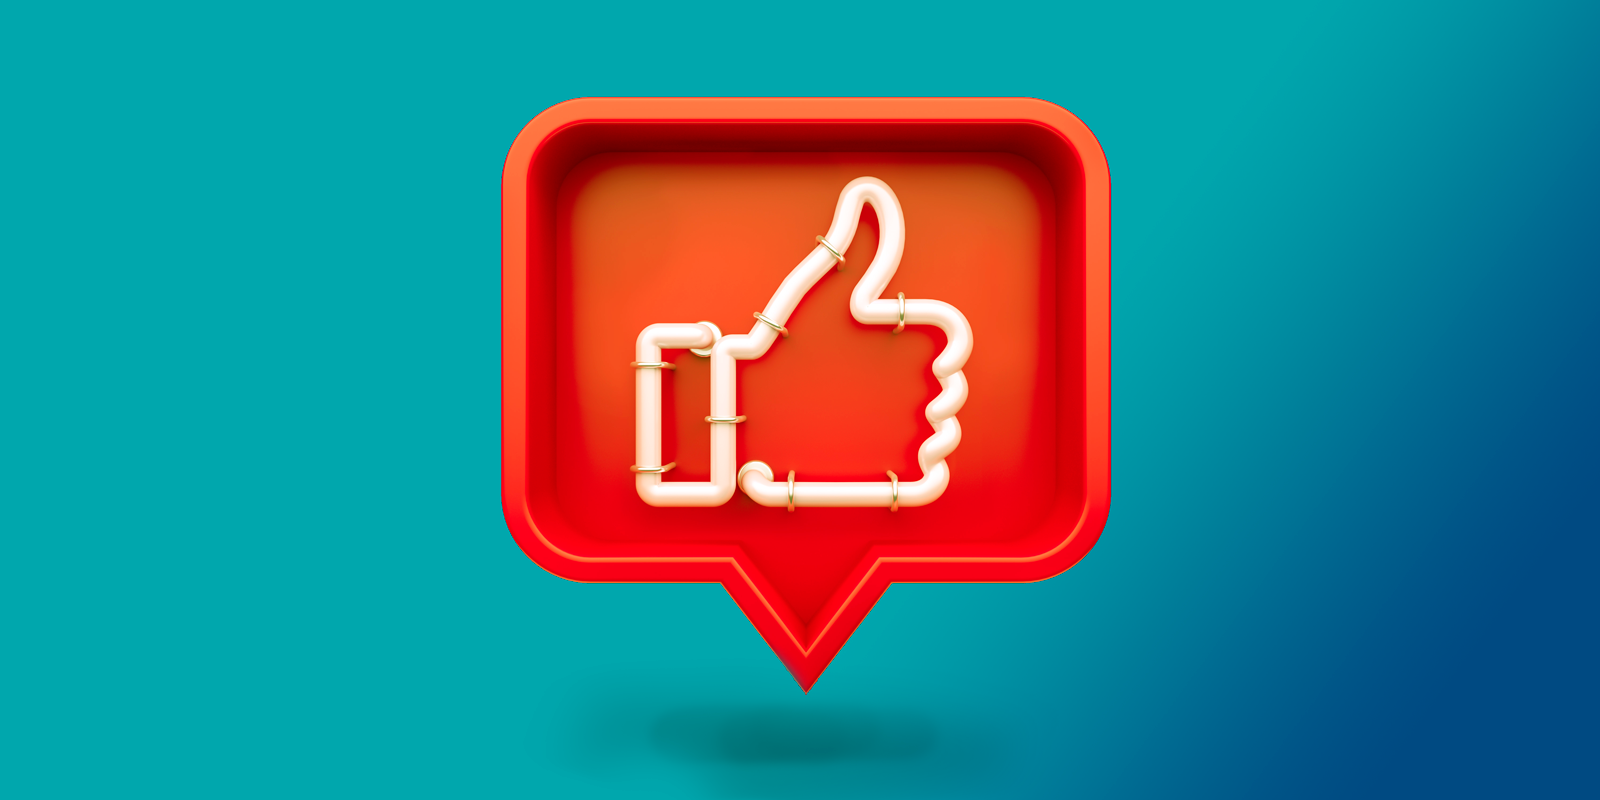 Social media thumbs up icon